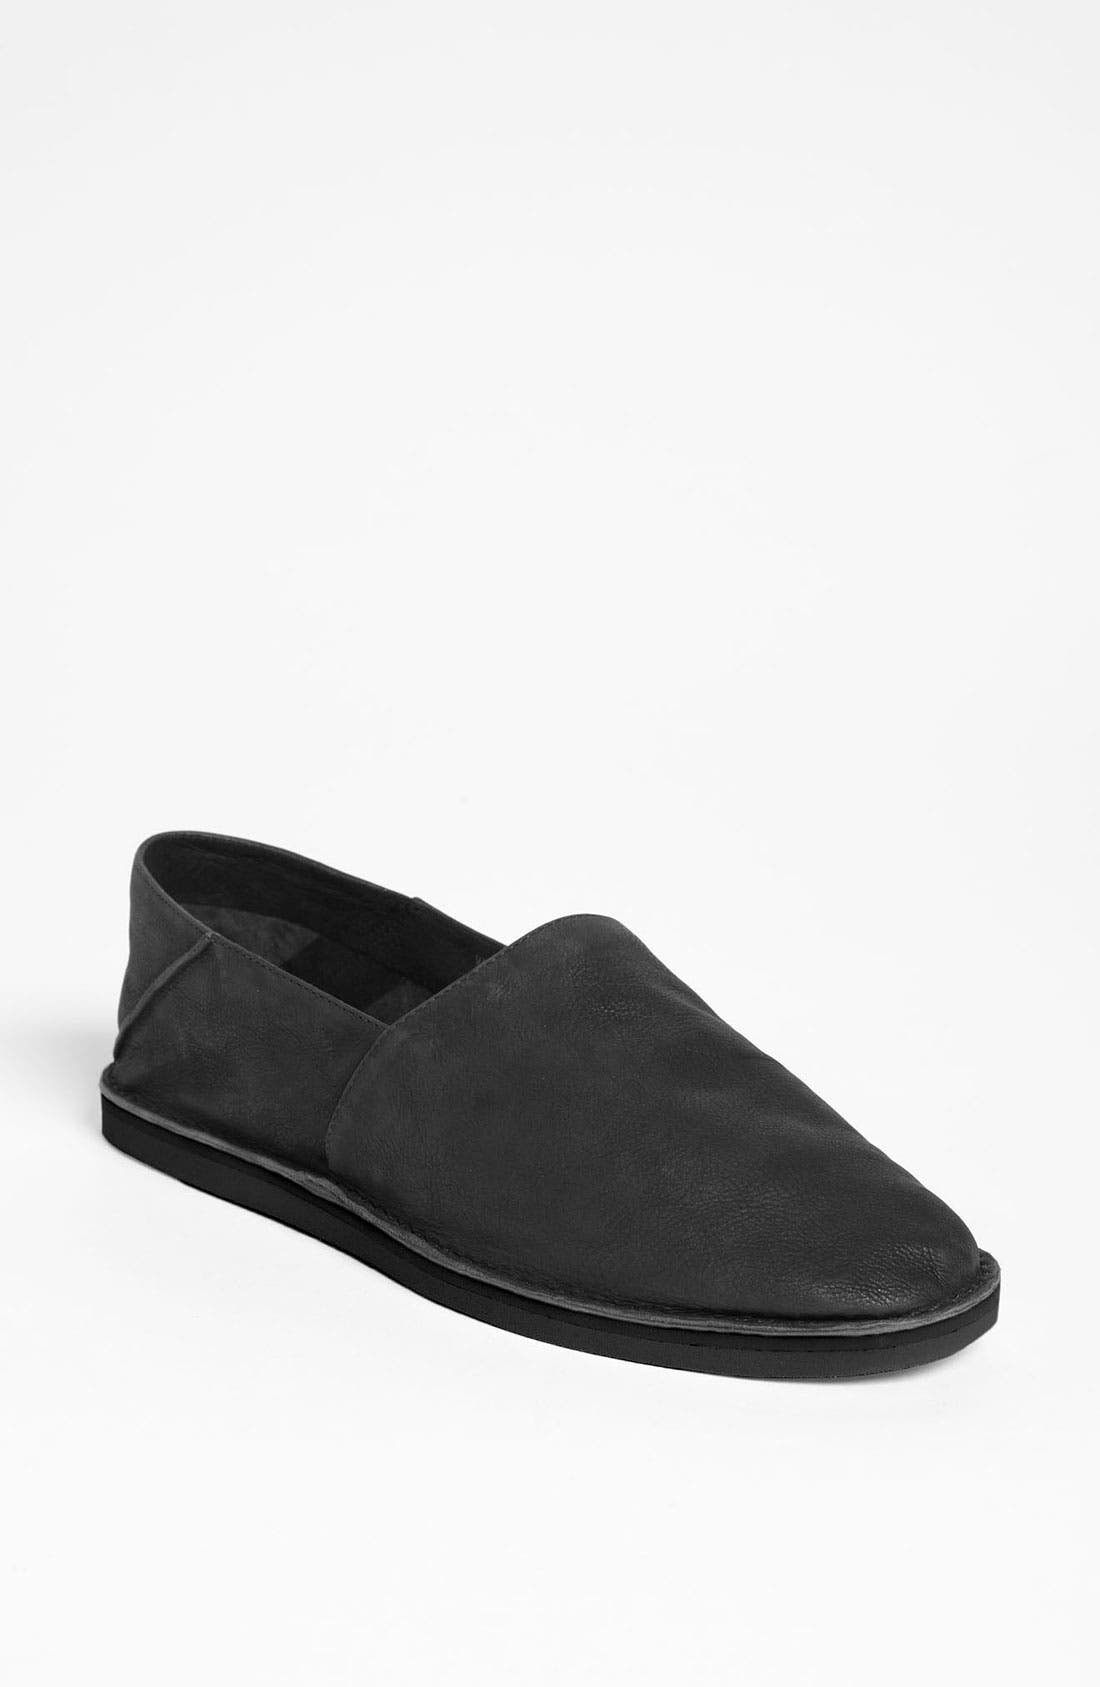 Main Image - Vince 'Kia' Slip-On